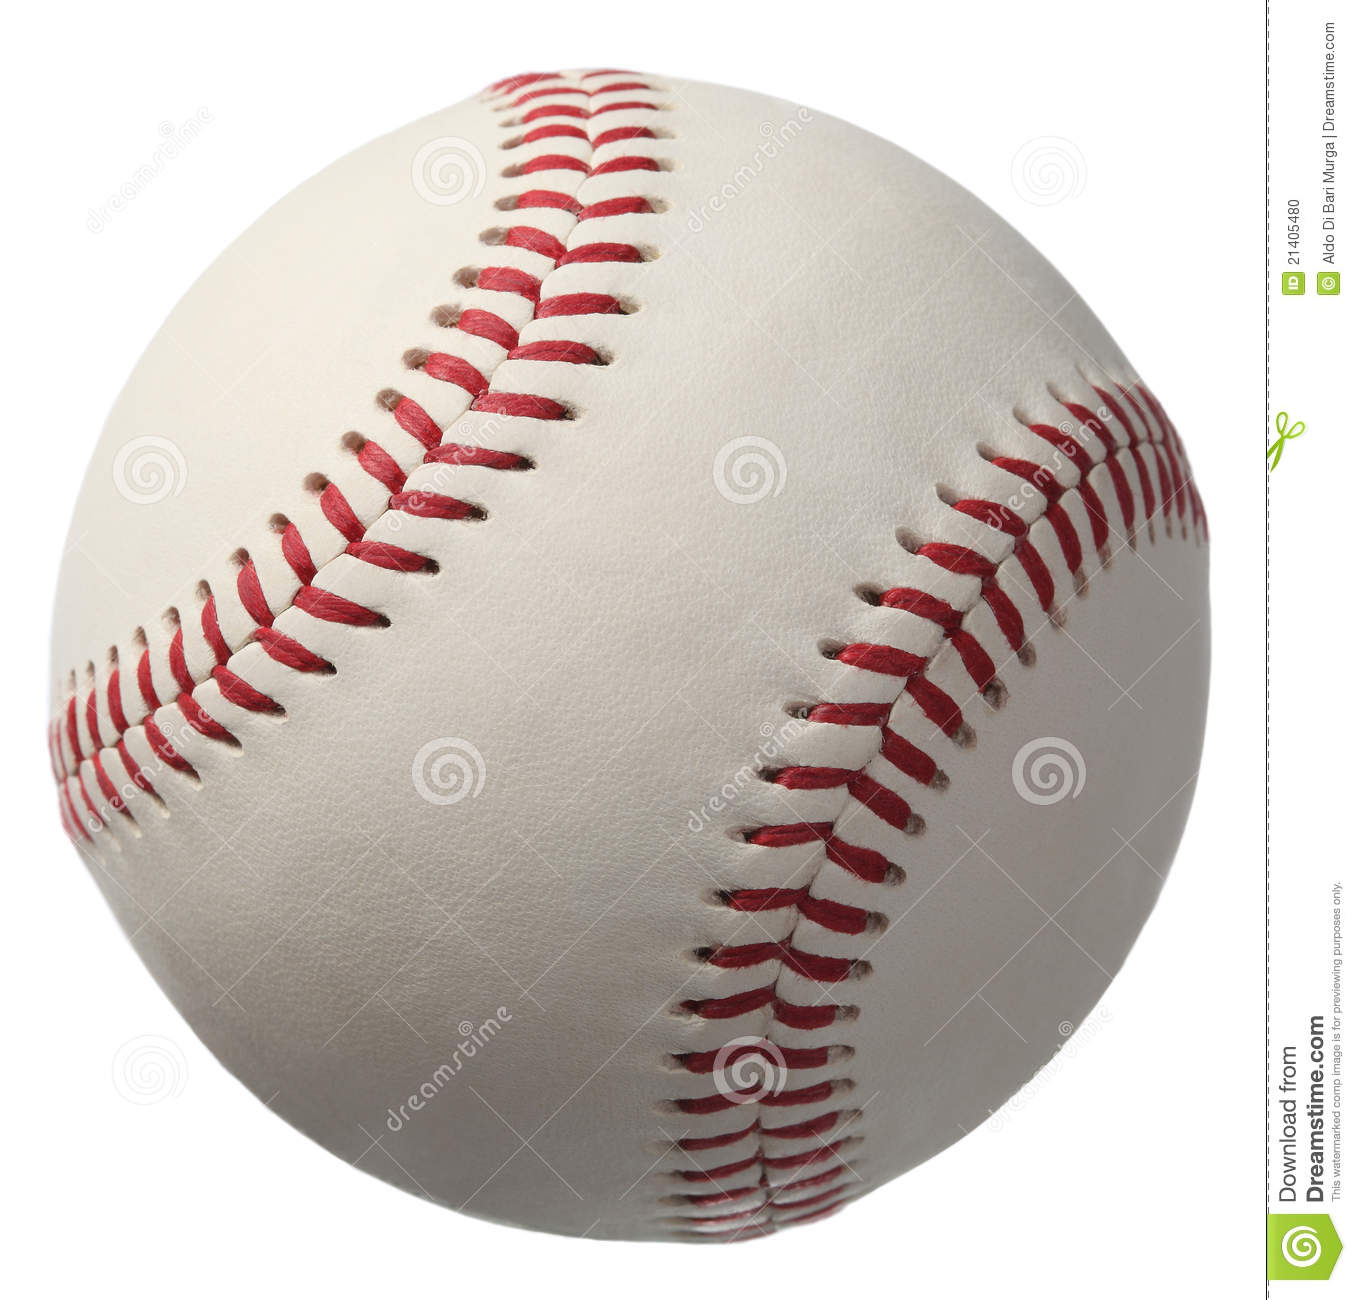 Baseball Ball Stock Photo - Image: 21405480